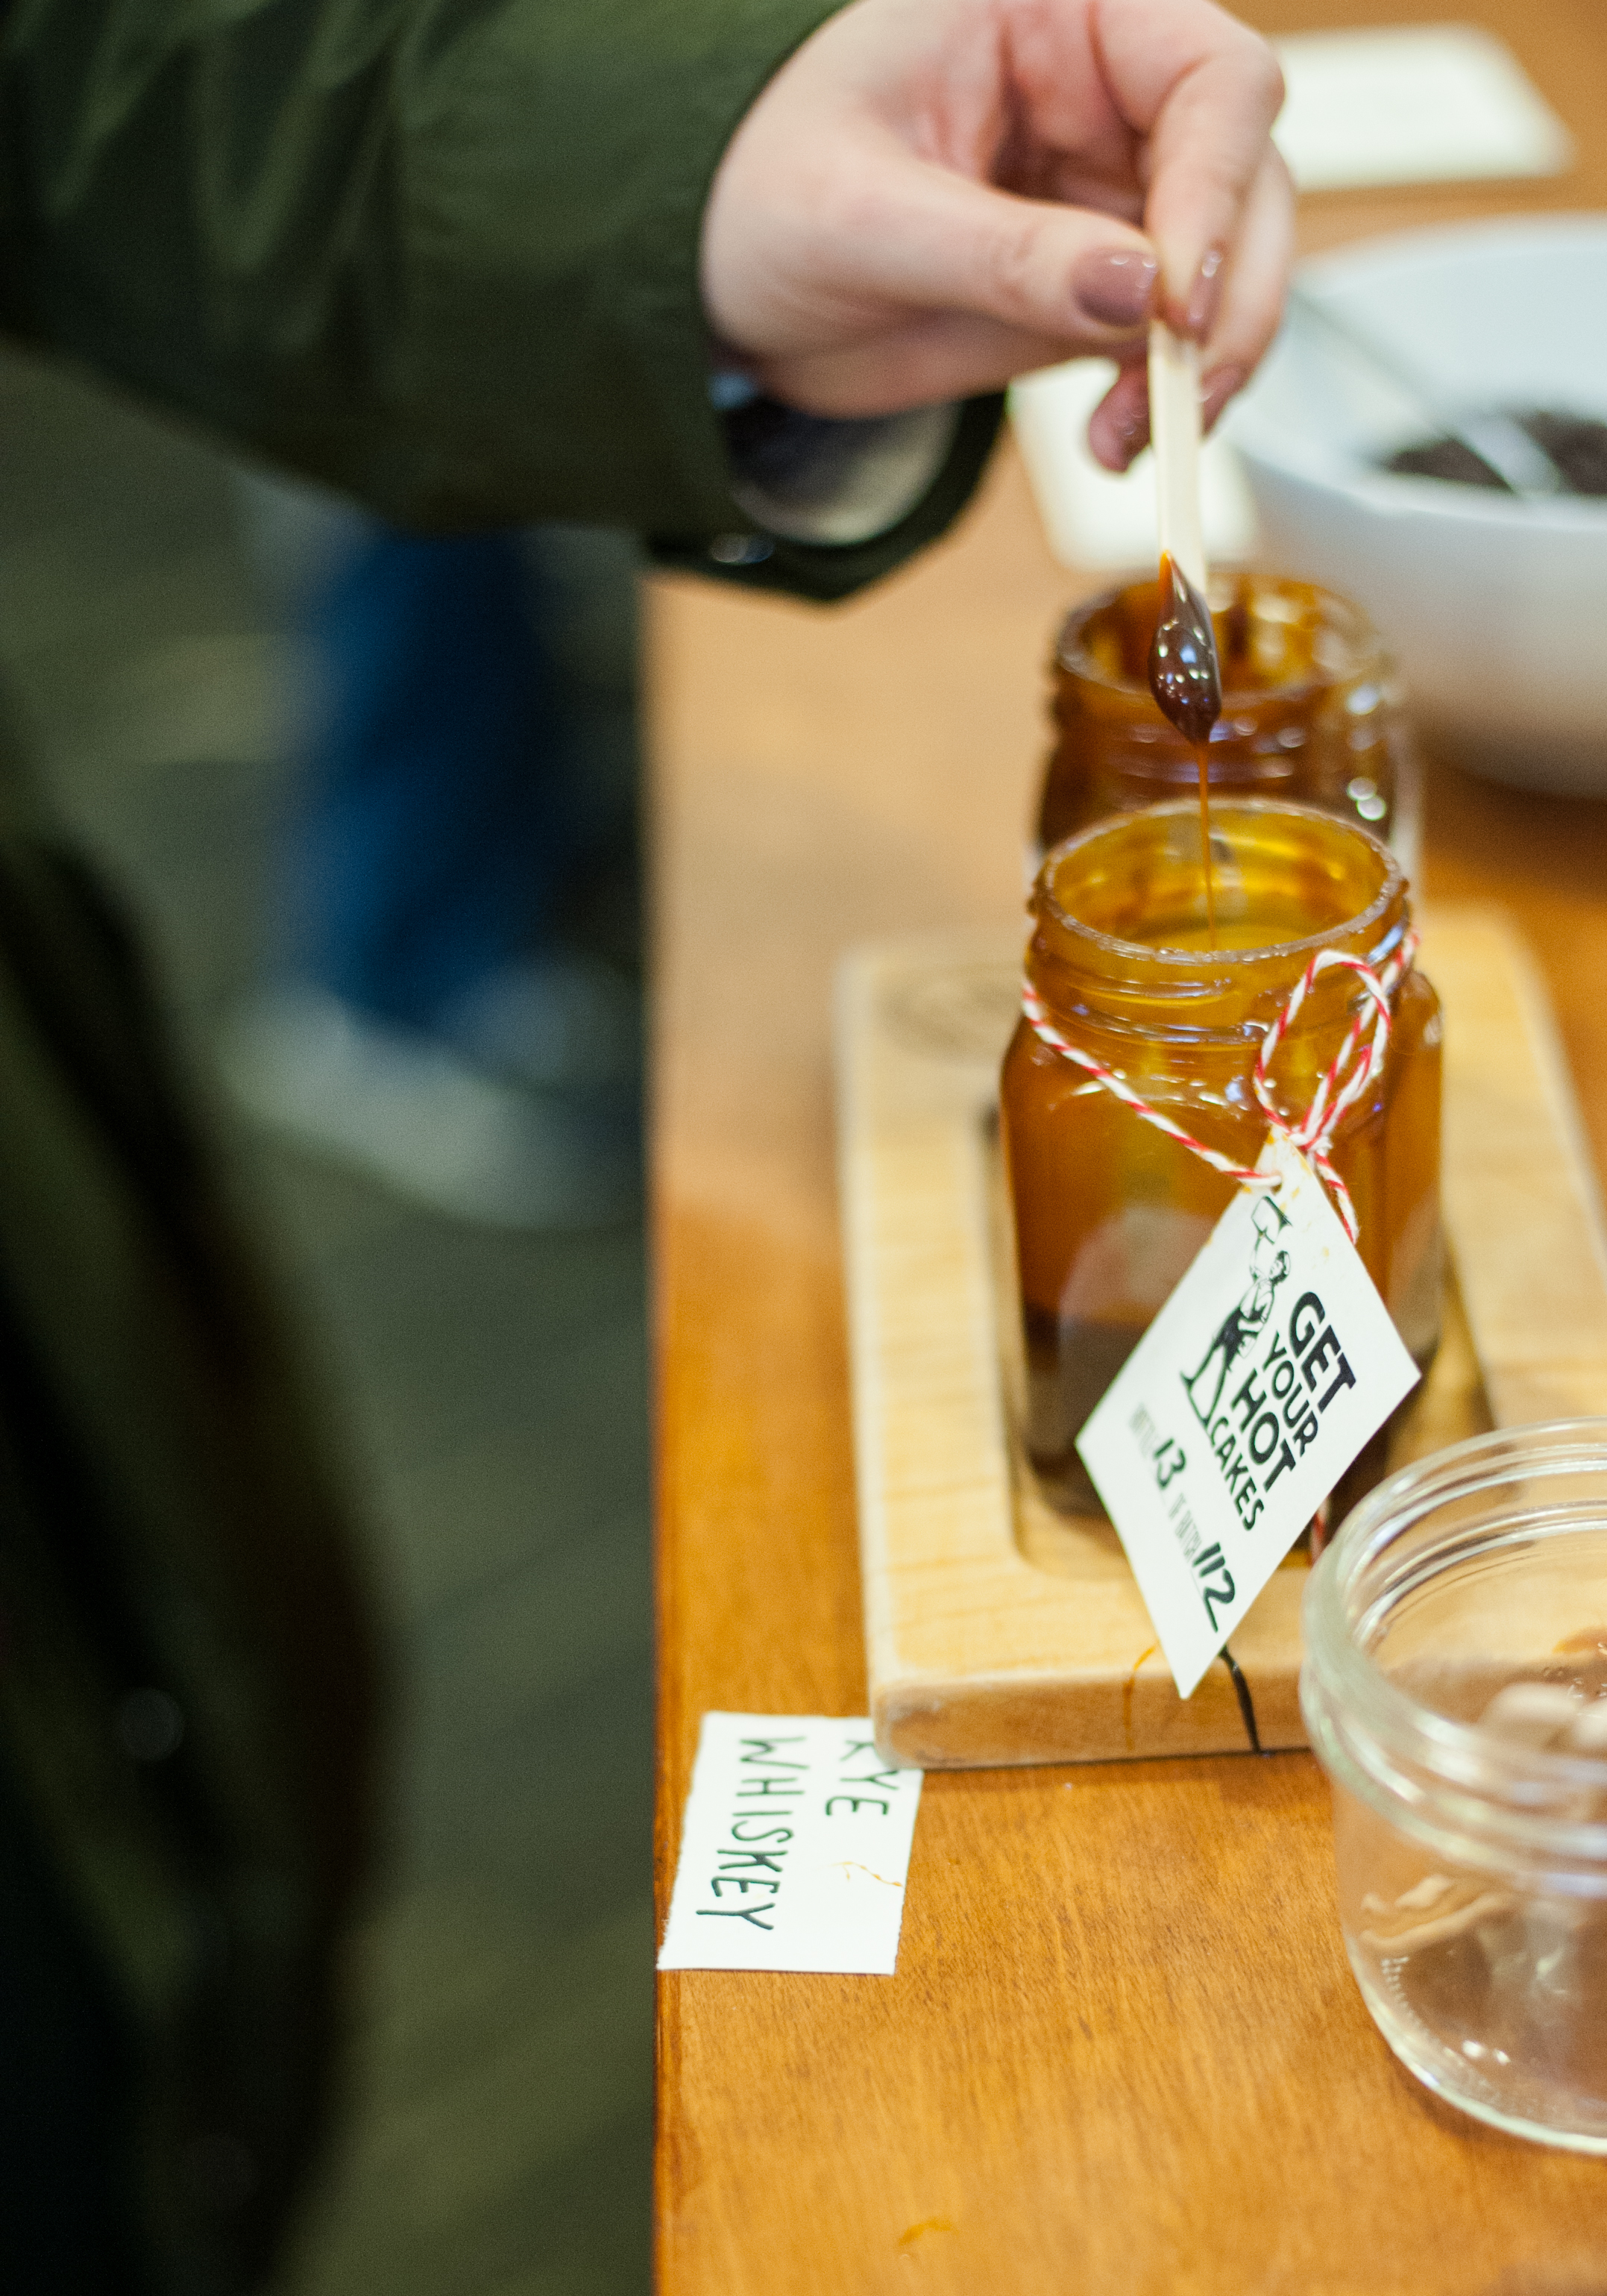 For a little break from chocolate, the rye whiskey caramel at Seattle's uber-popular Hot Cakes is so smokey and rich it  begs for a mention. Whiskey fans should grab this up to put on ice cream, or cake, or eat it on its own, it's that good. (Image: Elizabeth Crook / Seattle Refined)